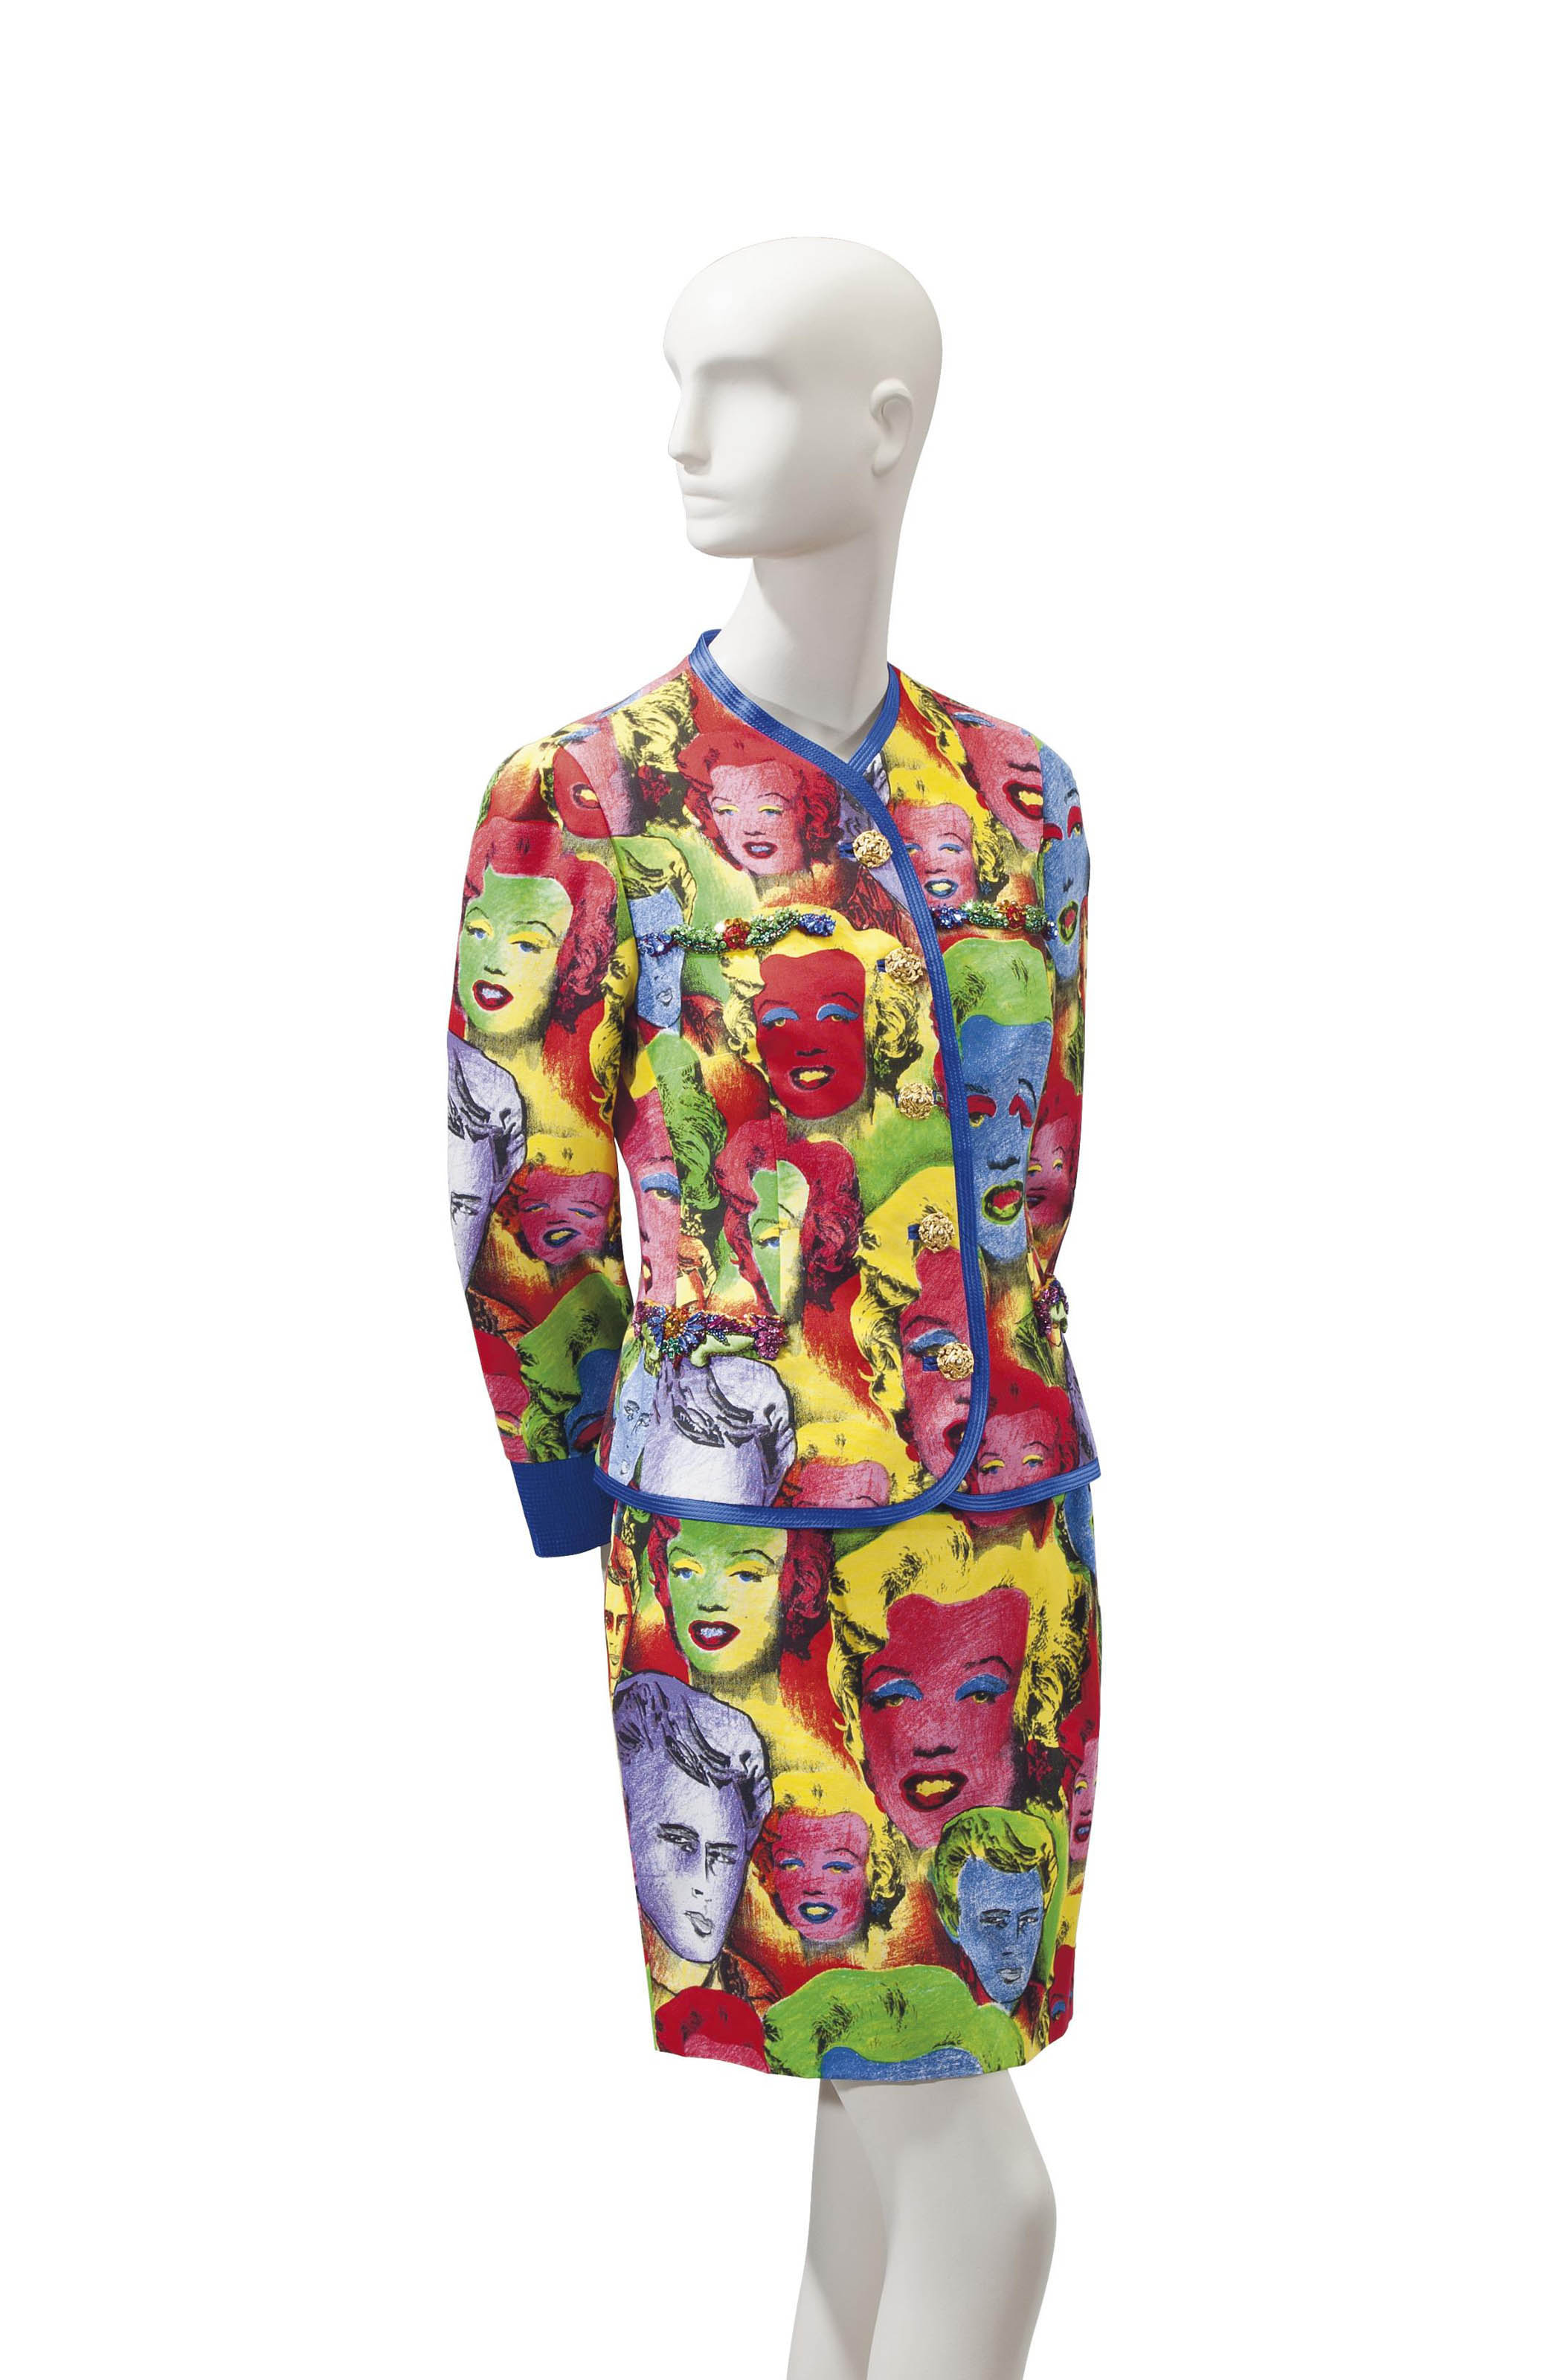 A VERSACE POLYCHROME WARHOL-INSPIRED IMAGERY SUIT